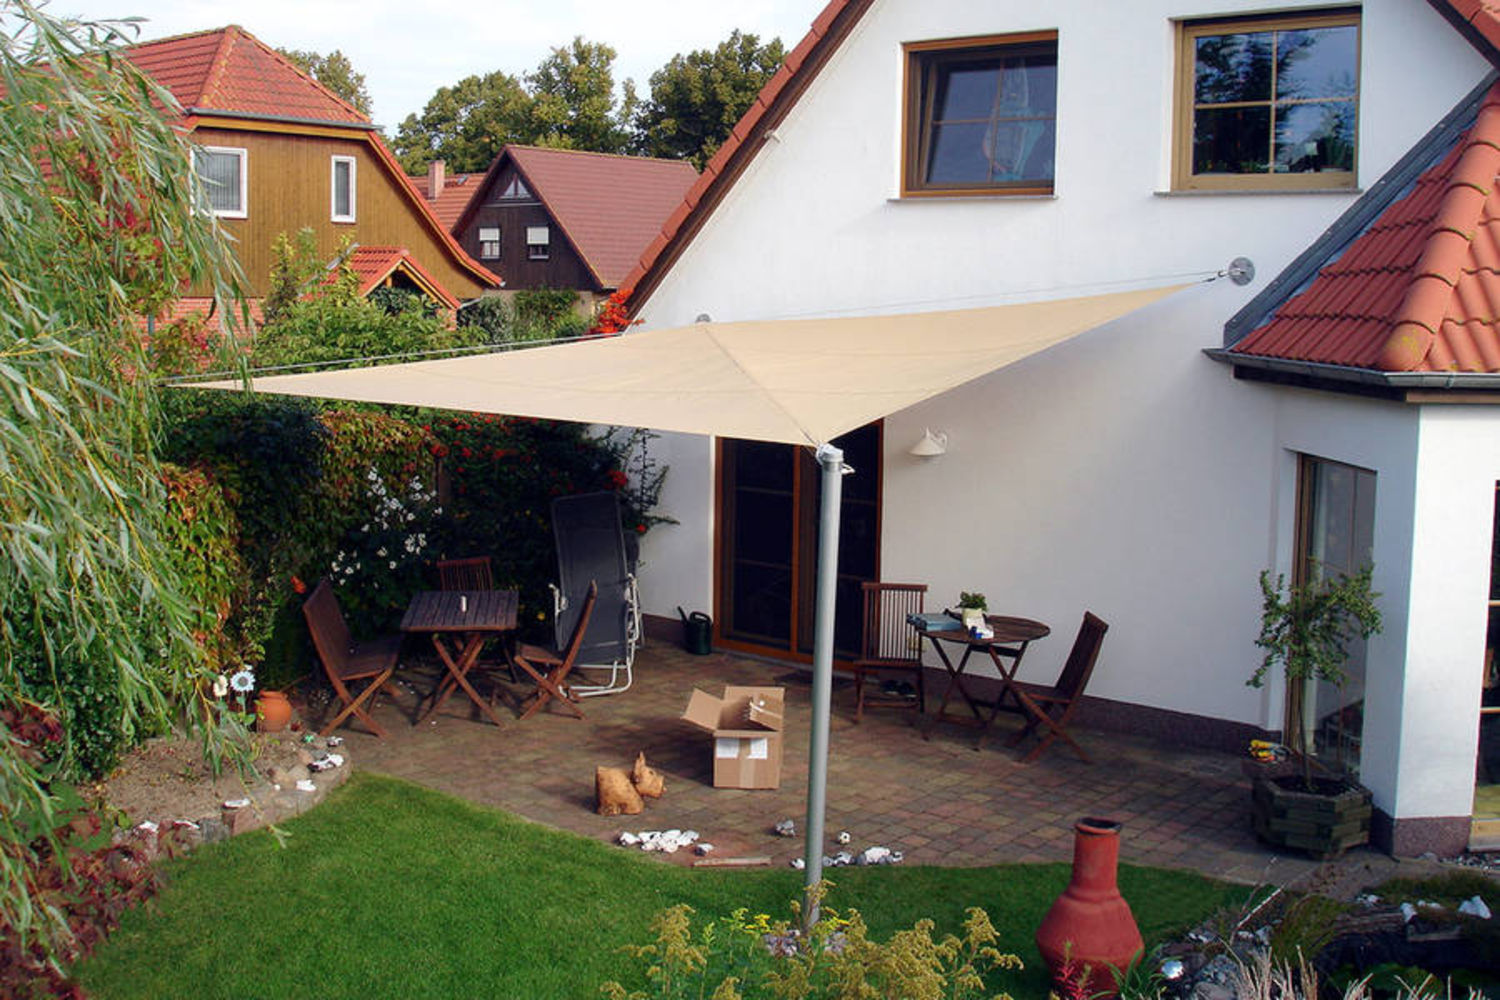 Sonnensegel Frankfurt emejing sonnensegel terrasse sonnenschutz ideas house design ideas cuscinema us